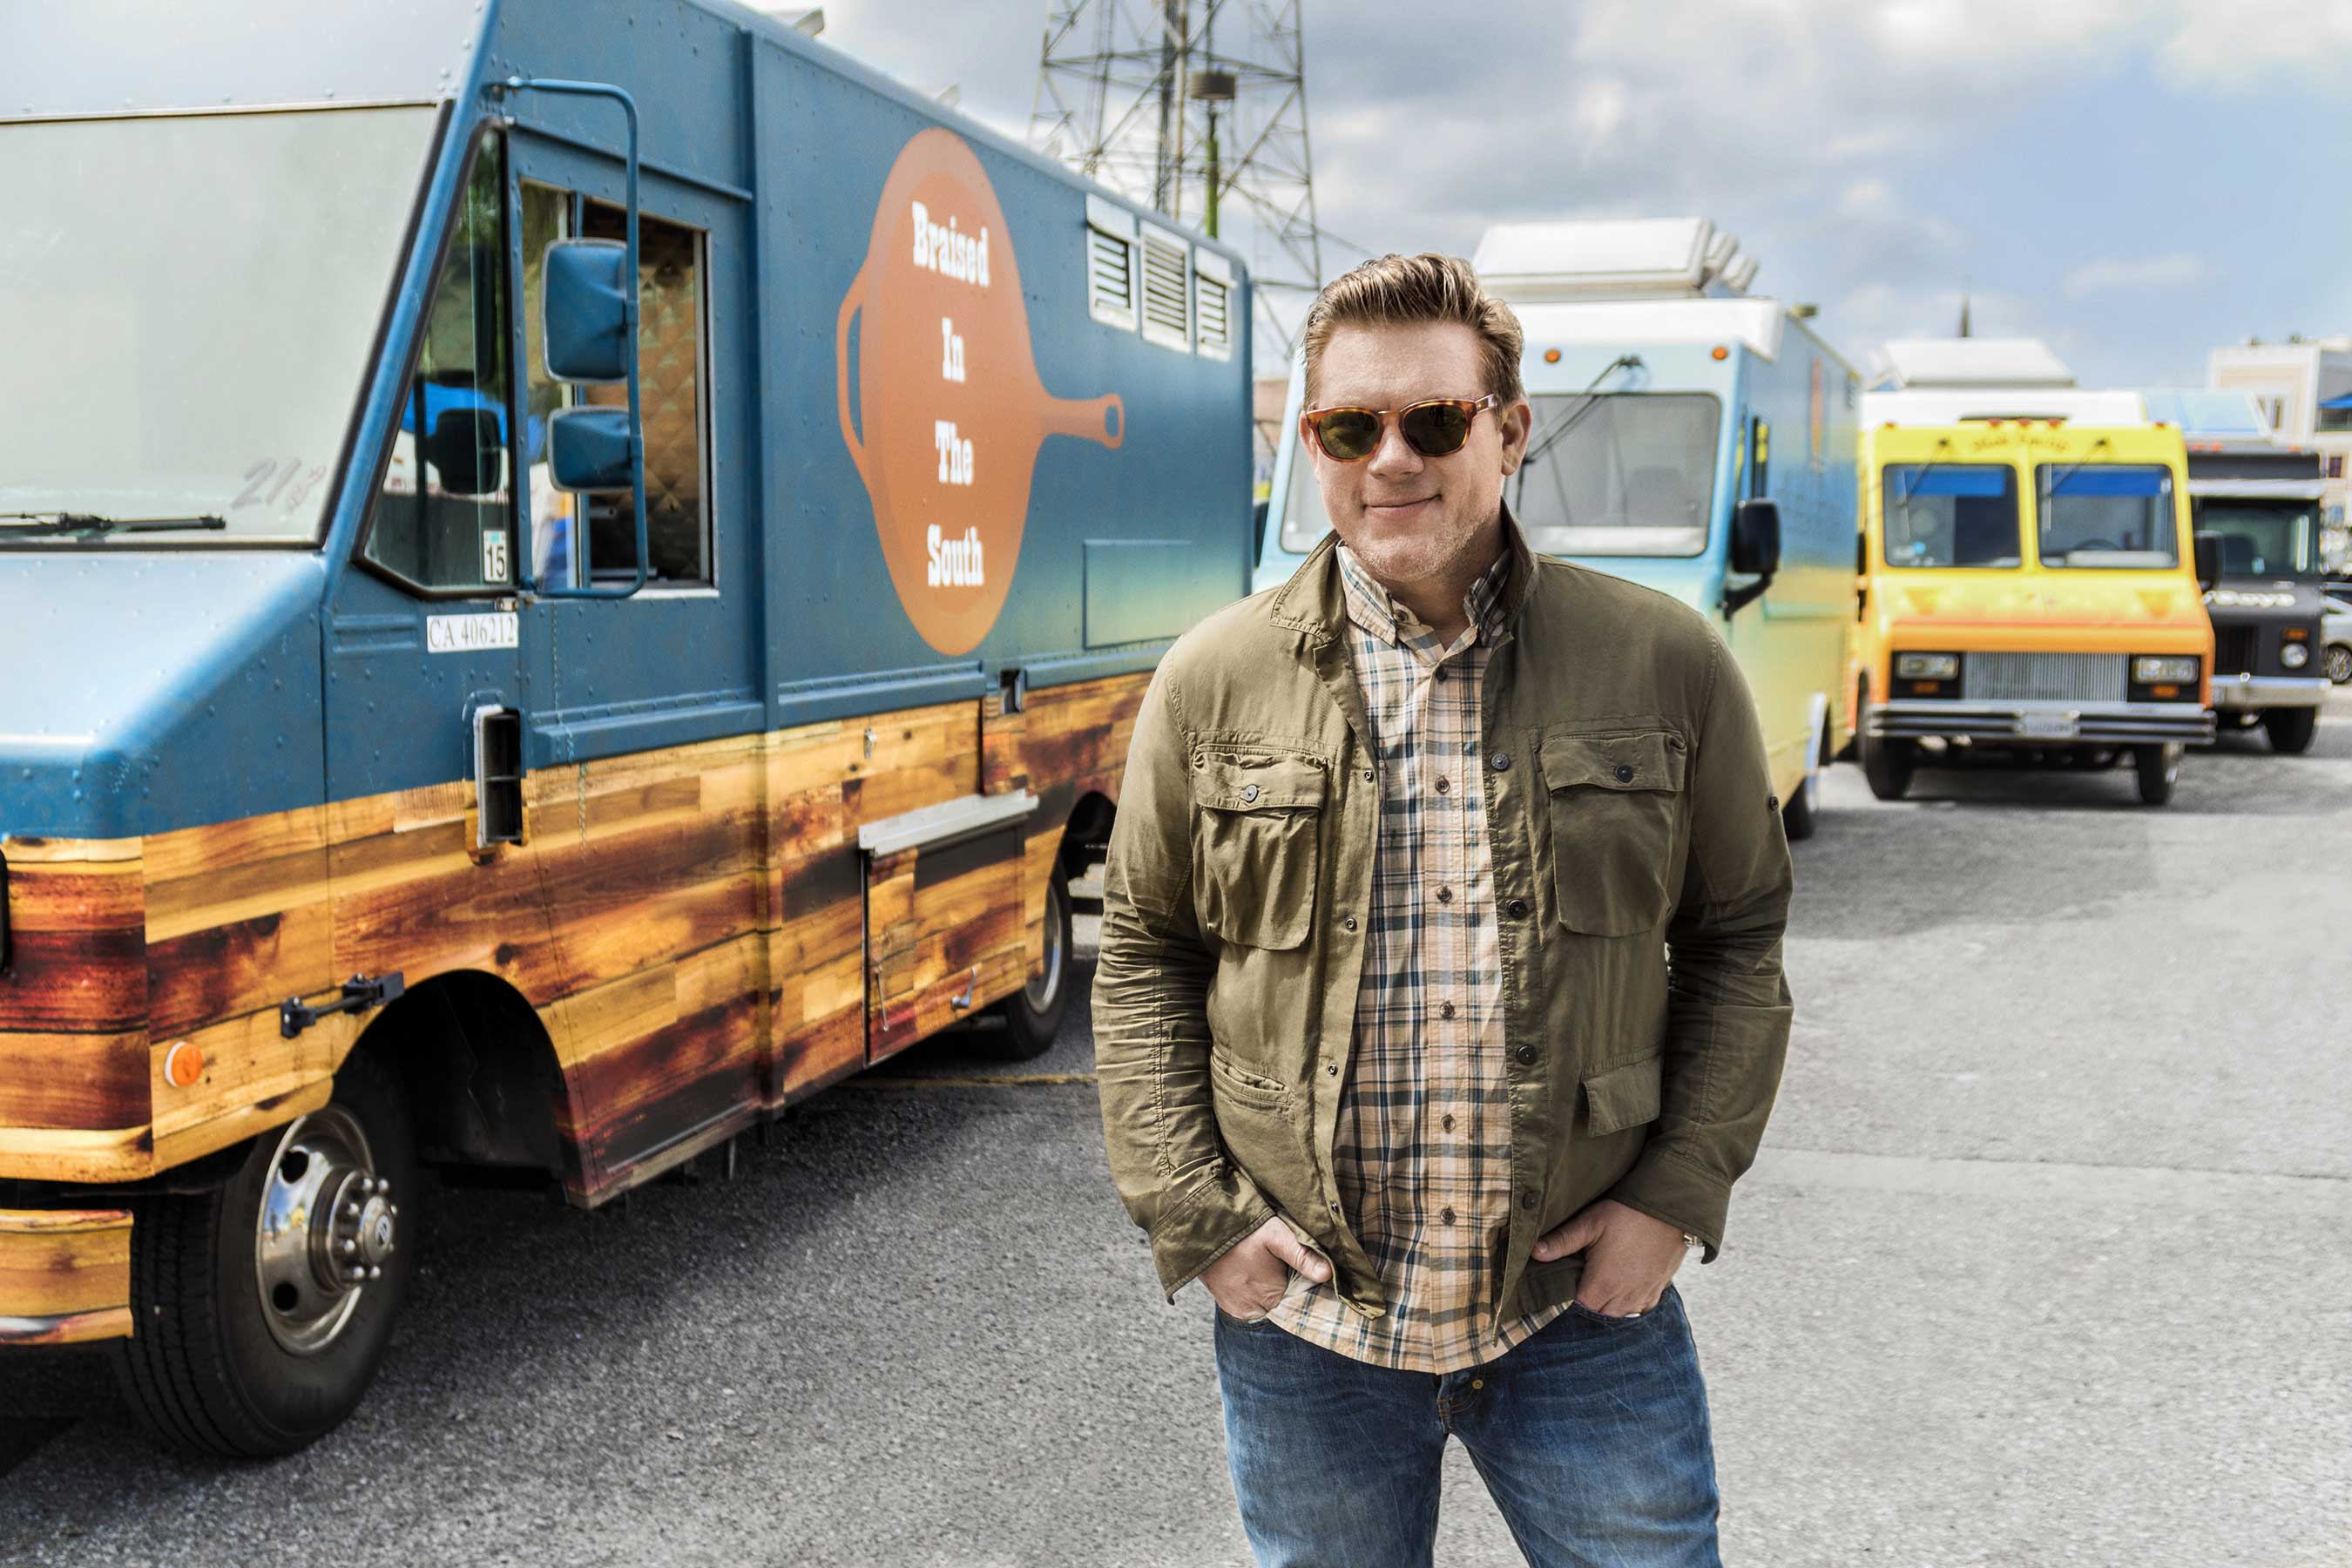 Tyler Florence on Food Network's The Great Food Truck Race